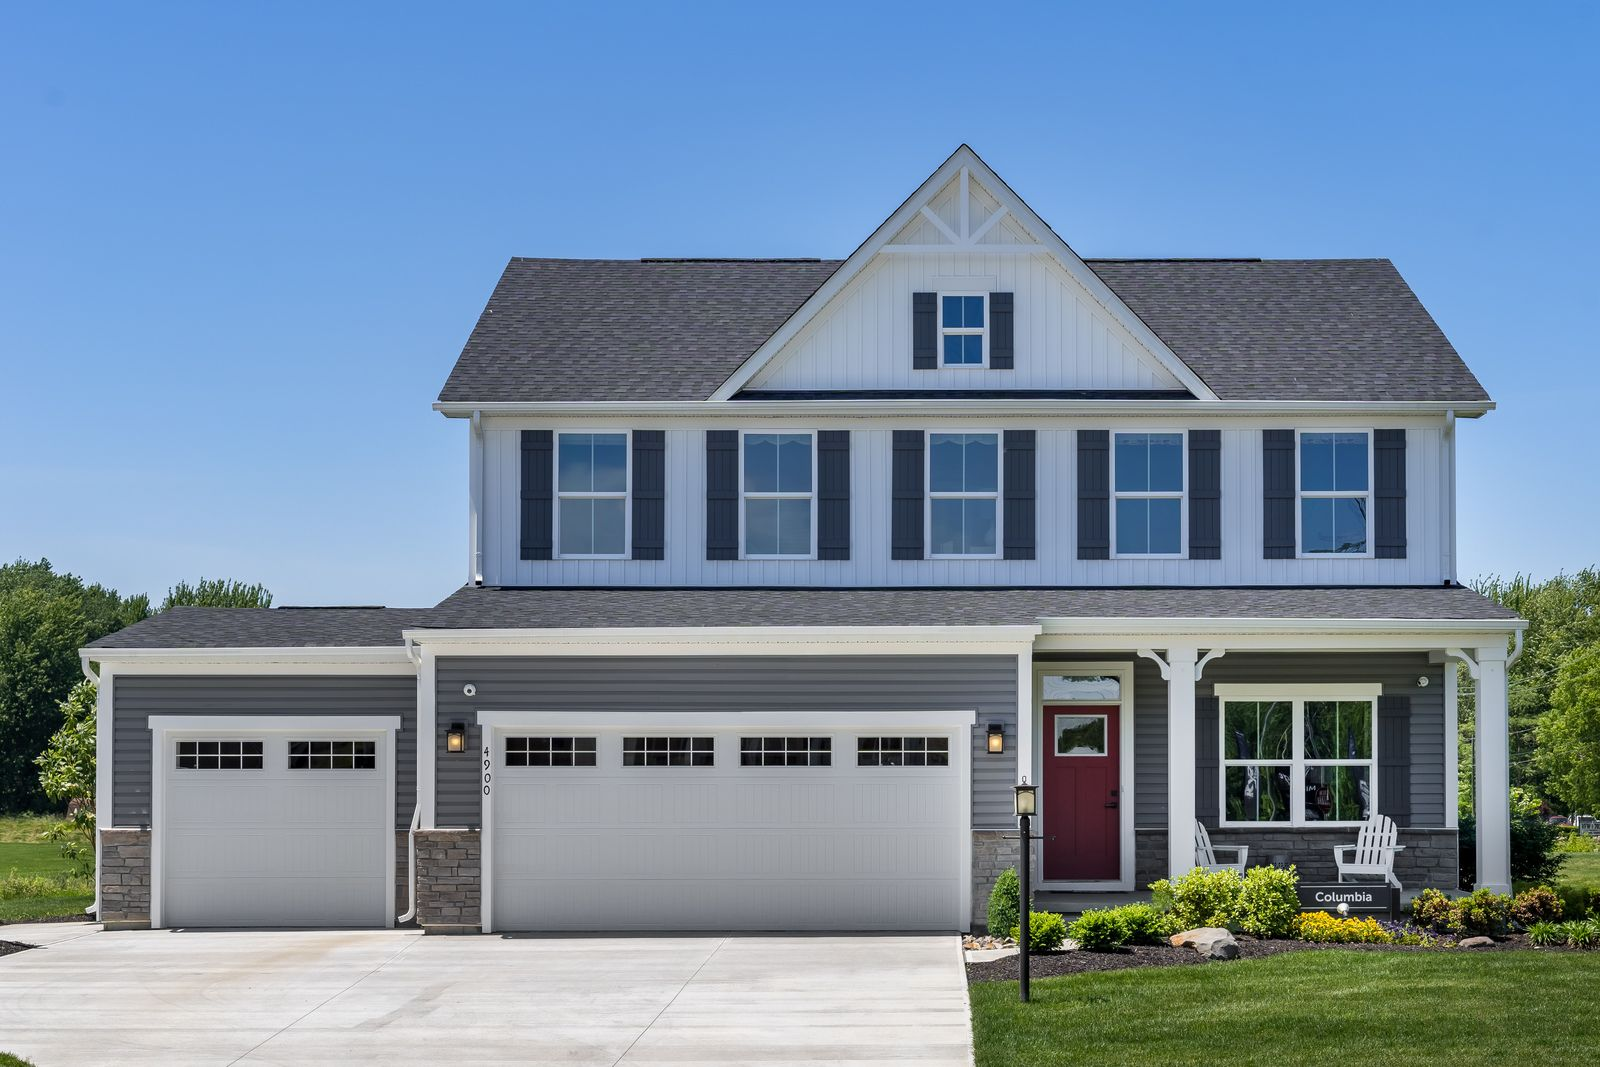 WELCOME HOME TO EWING MEADOWS:2-story homes with 2-3 car garages in a scenic community with walking trails and oversized, tree-lined homesites, close to Rte 33/36.Click Here to Schedule Your 1-on-1 or Virtual Visit Today!